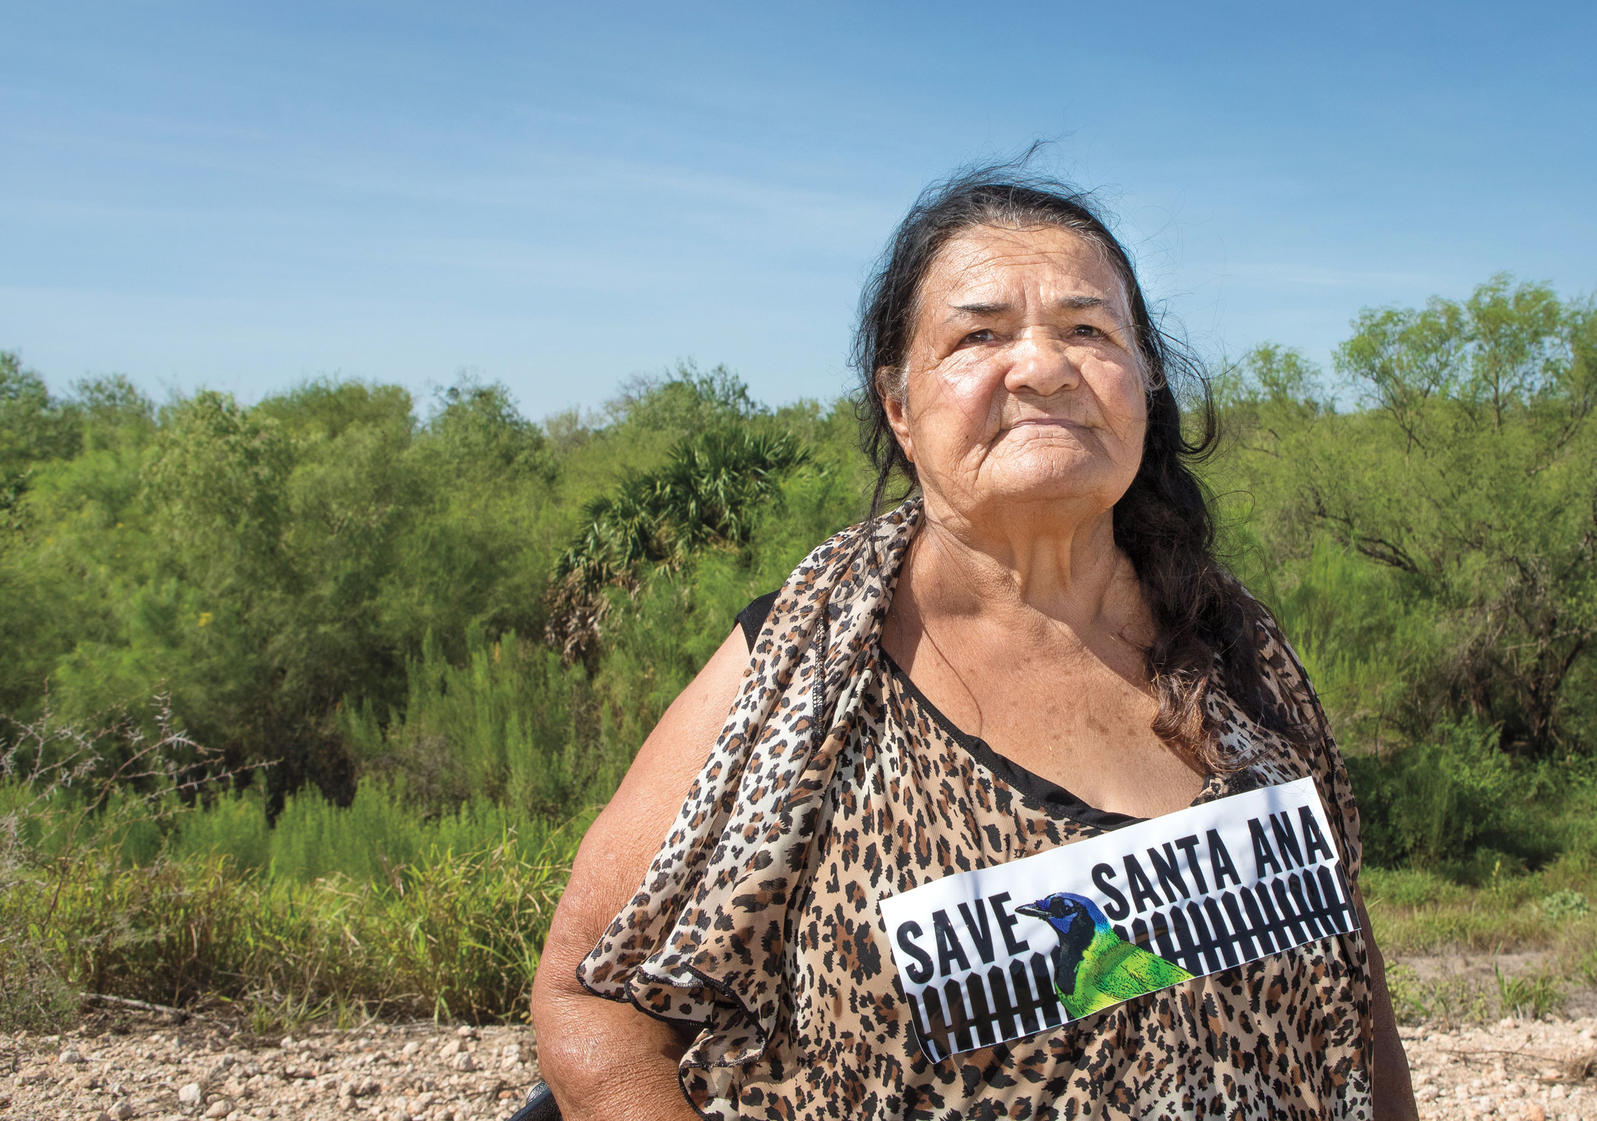 On August 13, Rio Grande Valley resident Zulema Hernandez joined anti-wall protesters in Texas's Santa Ana refuge. Krista Schlyer